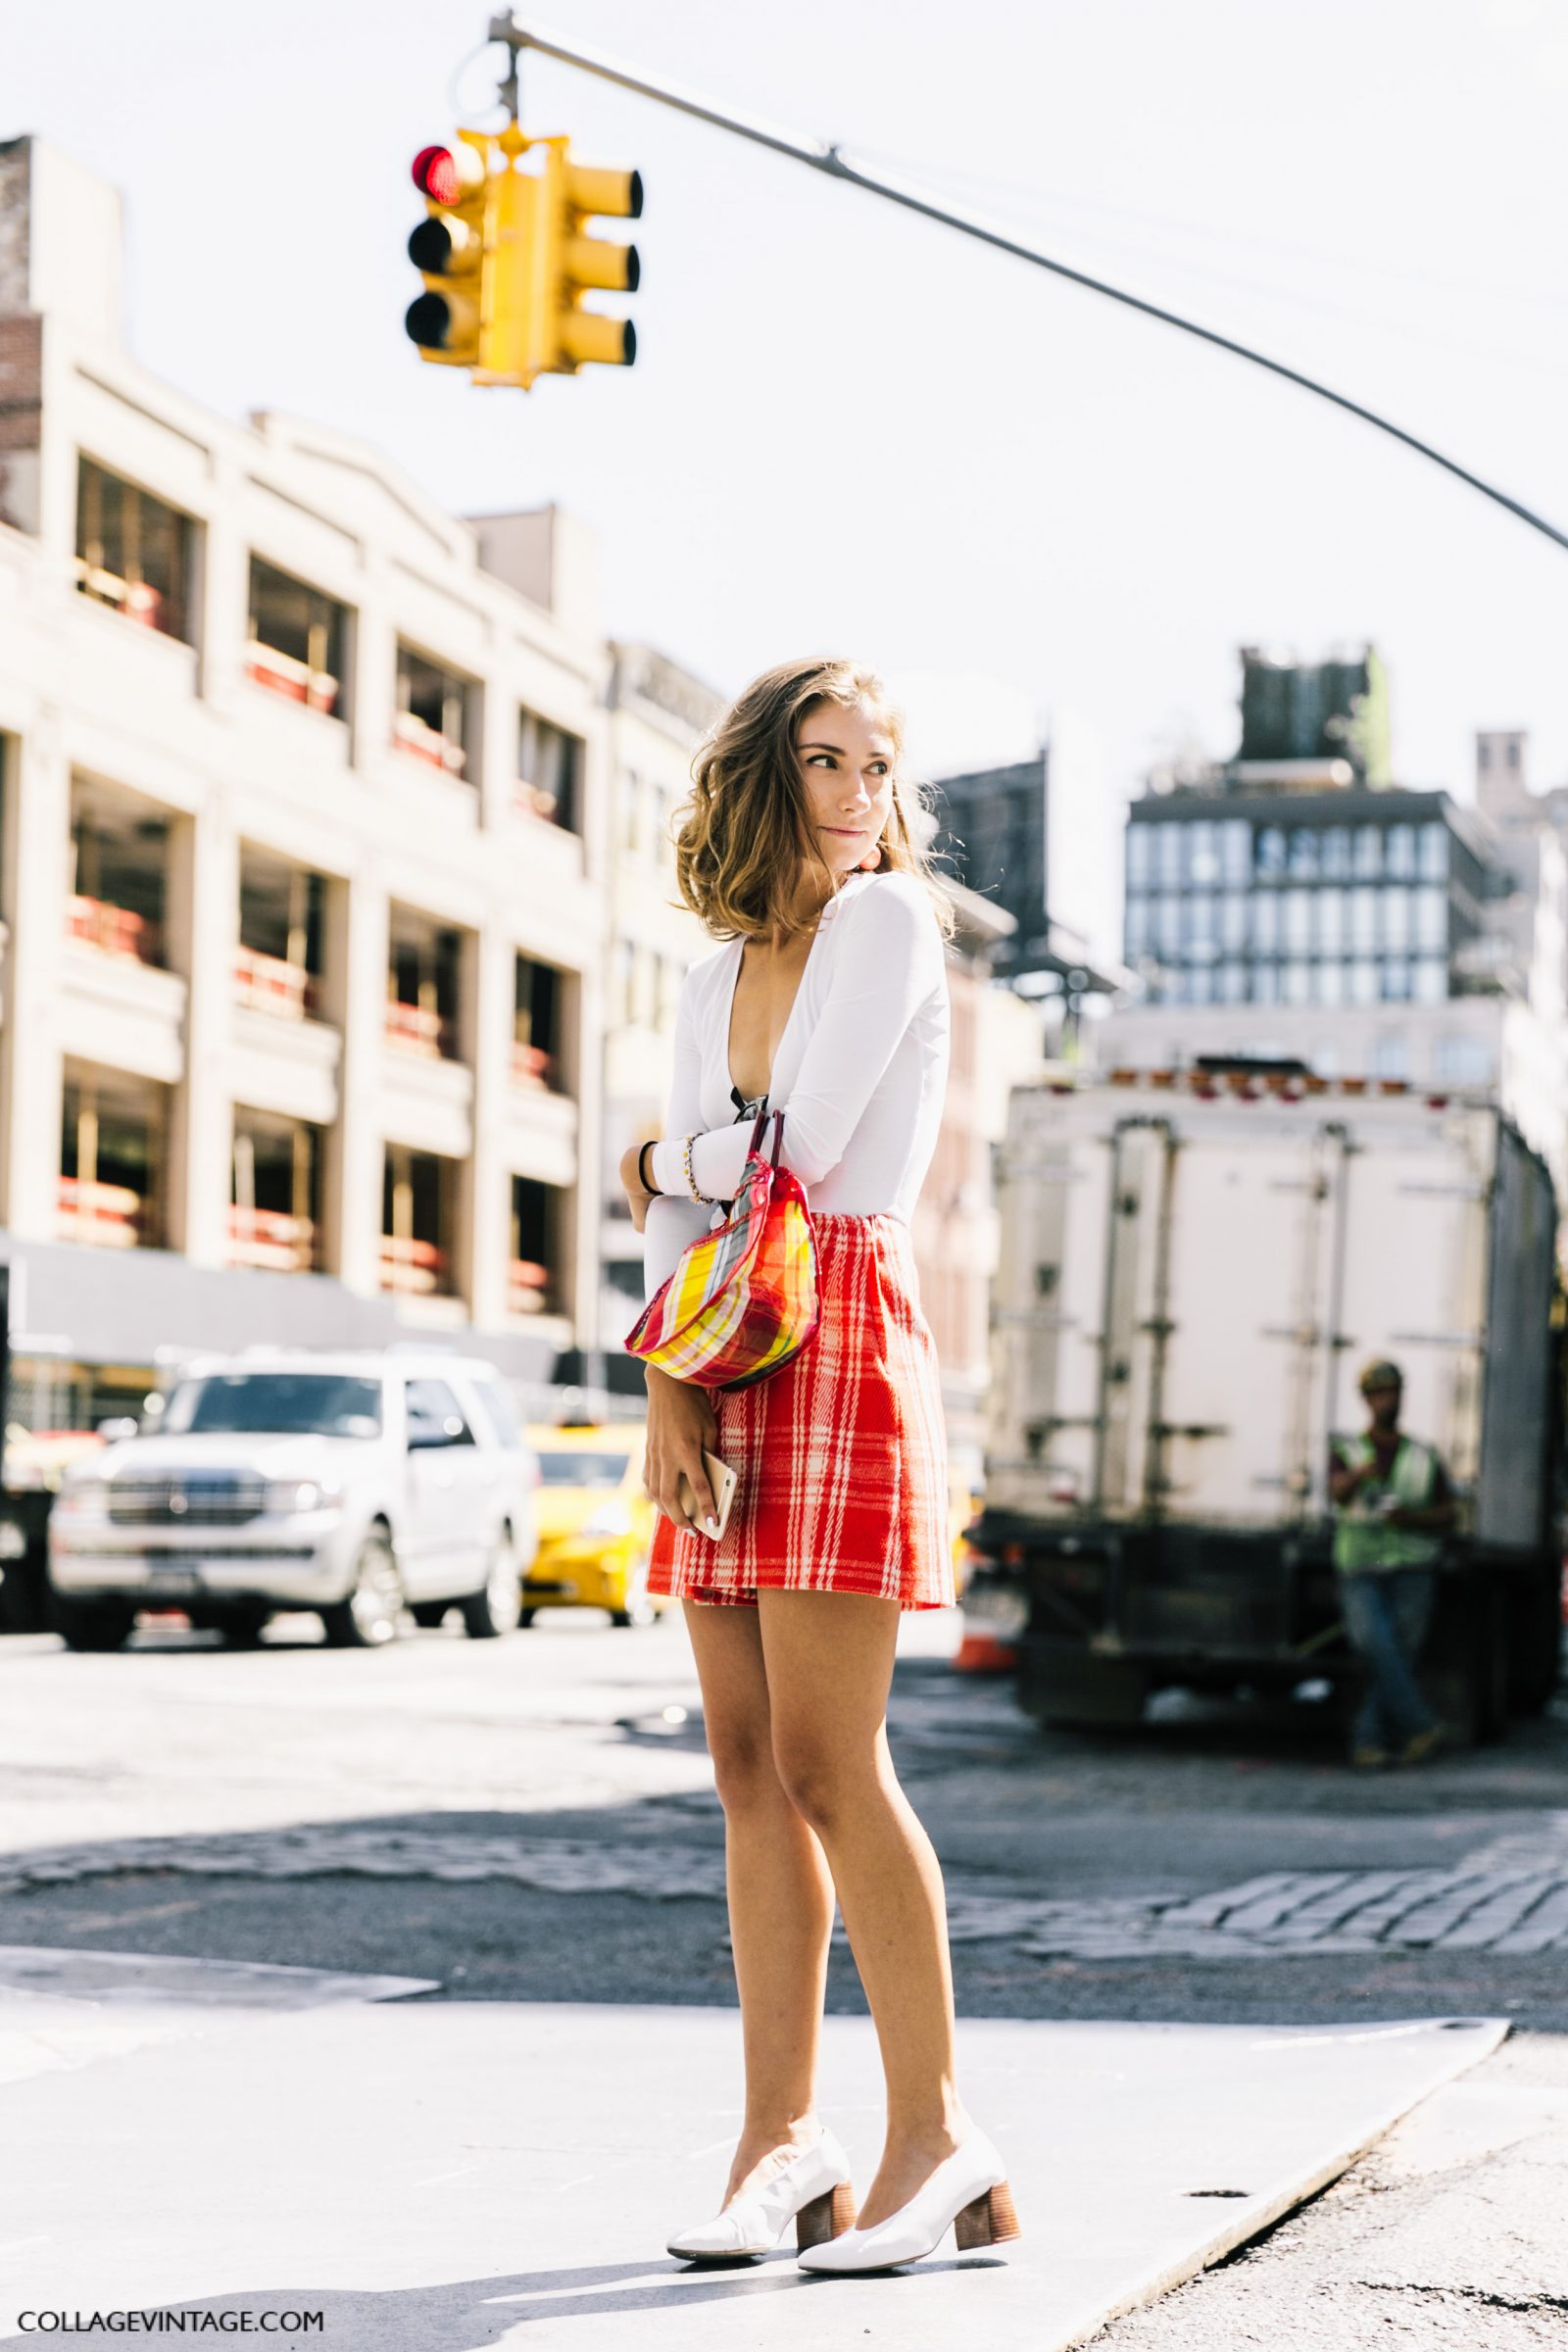 nyfw-new_york_fashion_week_ss17-street_style-outfits-collage_vintage-vintage-phillip_lim-the-row-proenza_schouler-rossie_aussolin-89